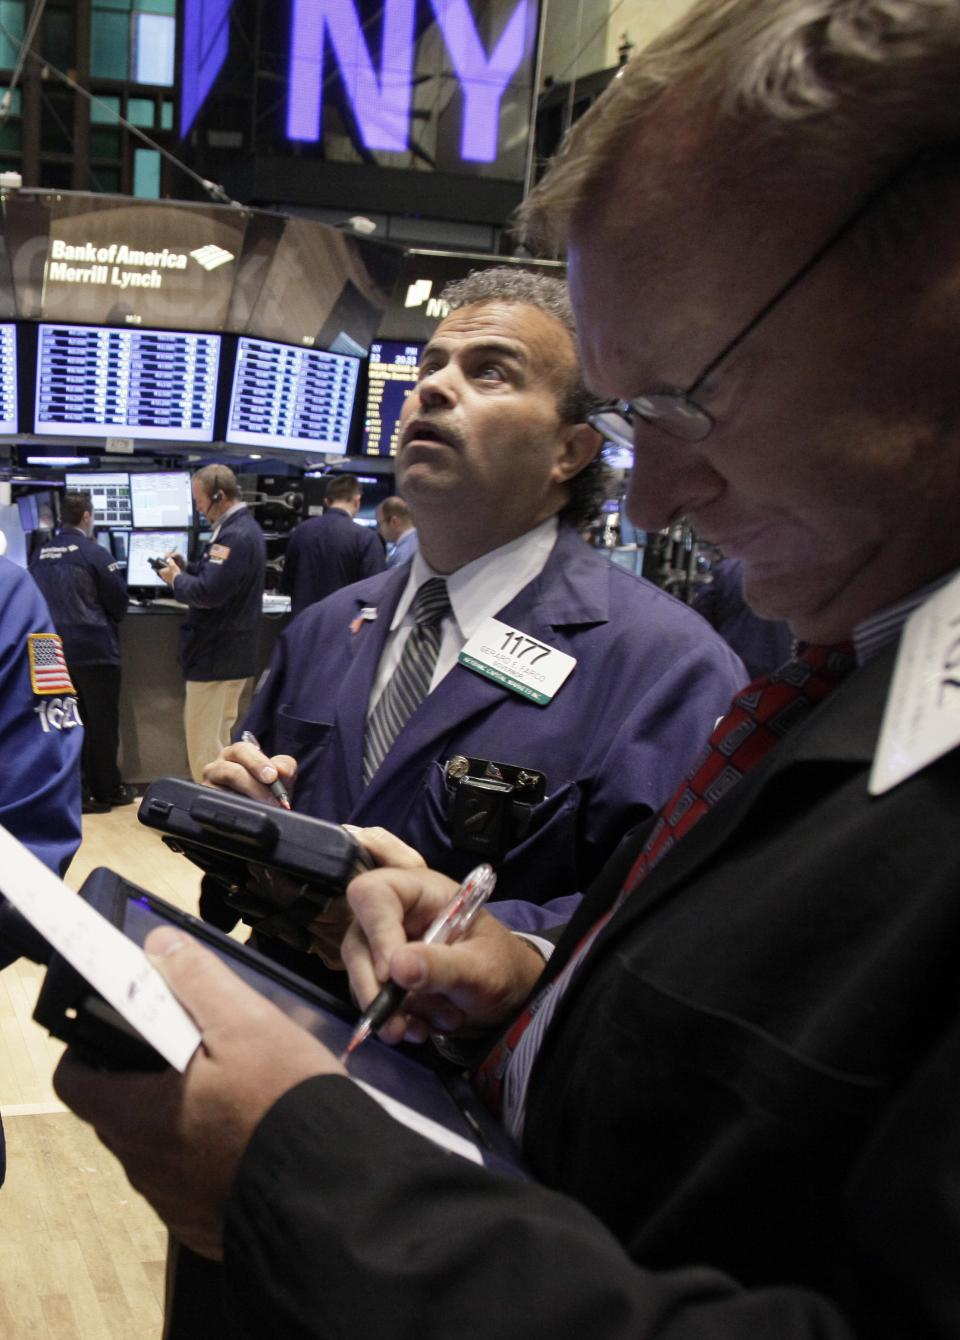 Gerard Farco, left, works with fellow traders on the floor of the New York Stock Exchange Monday, Sept. 19, 2011. (AP Photo/Richard Drew)